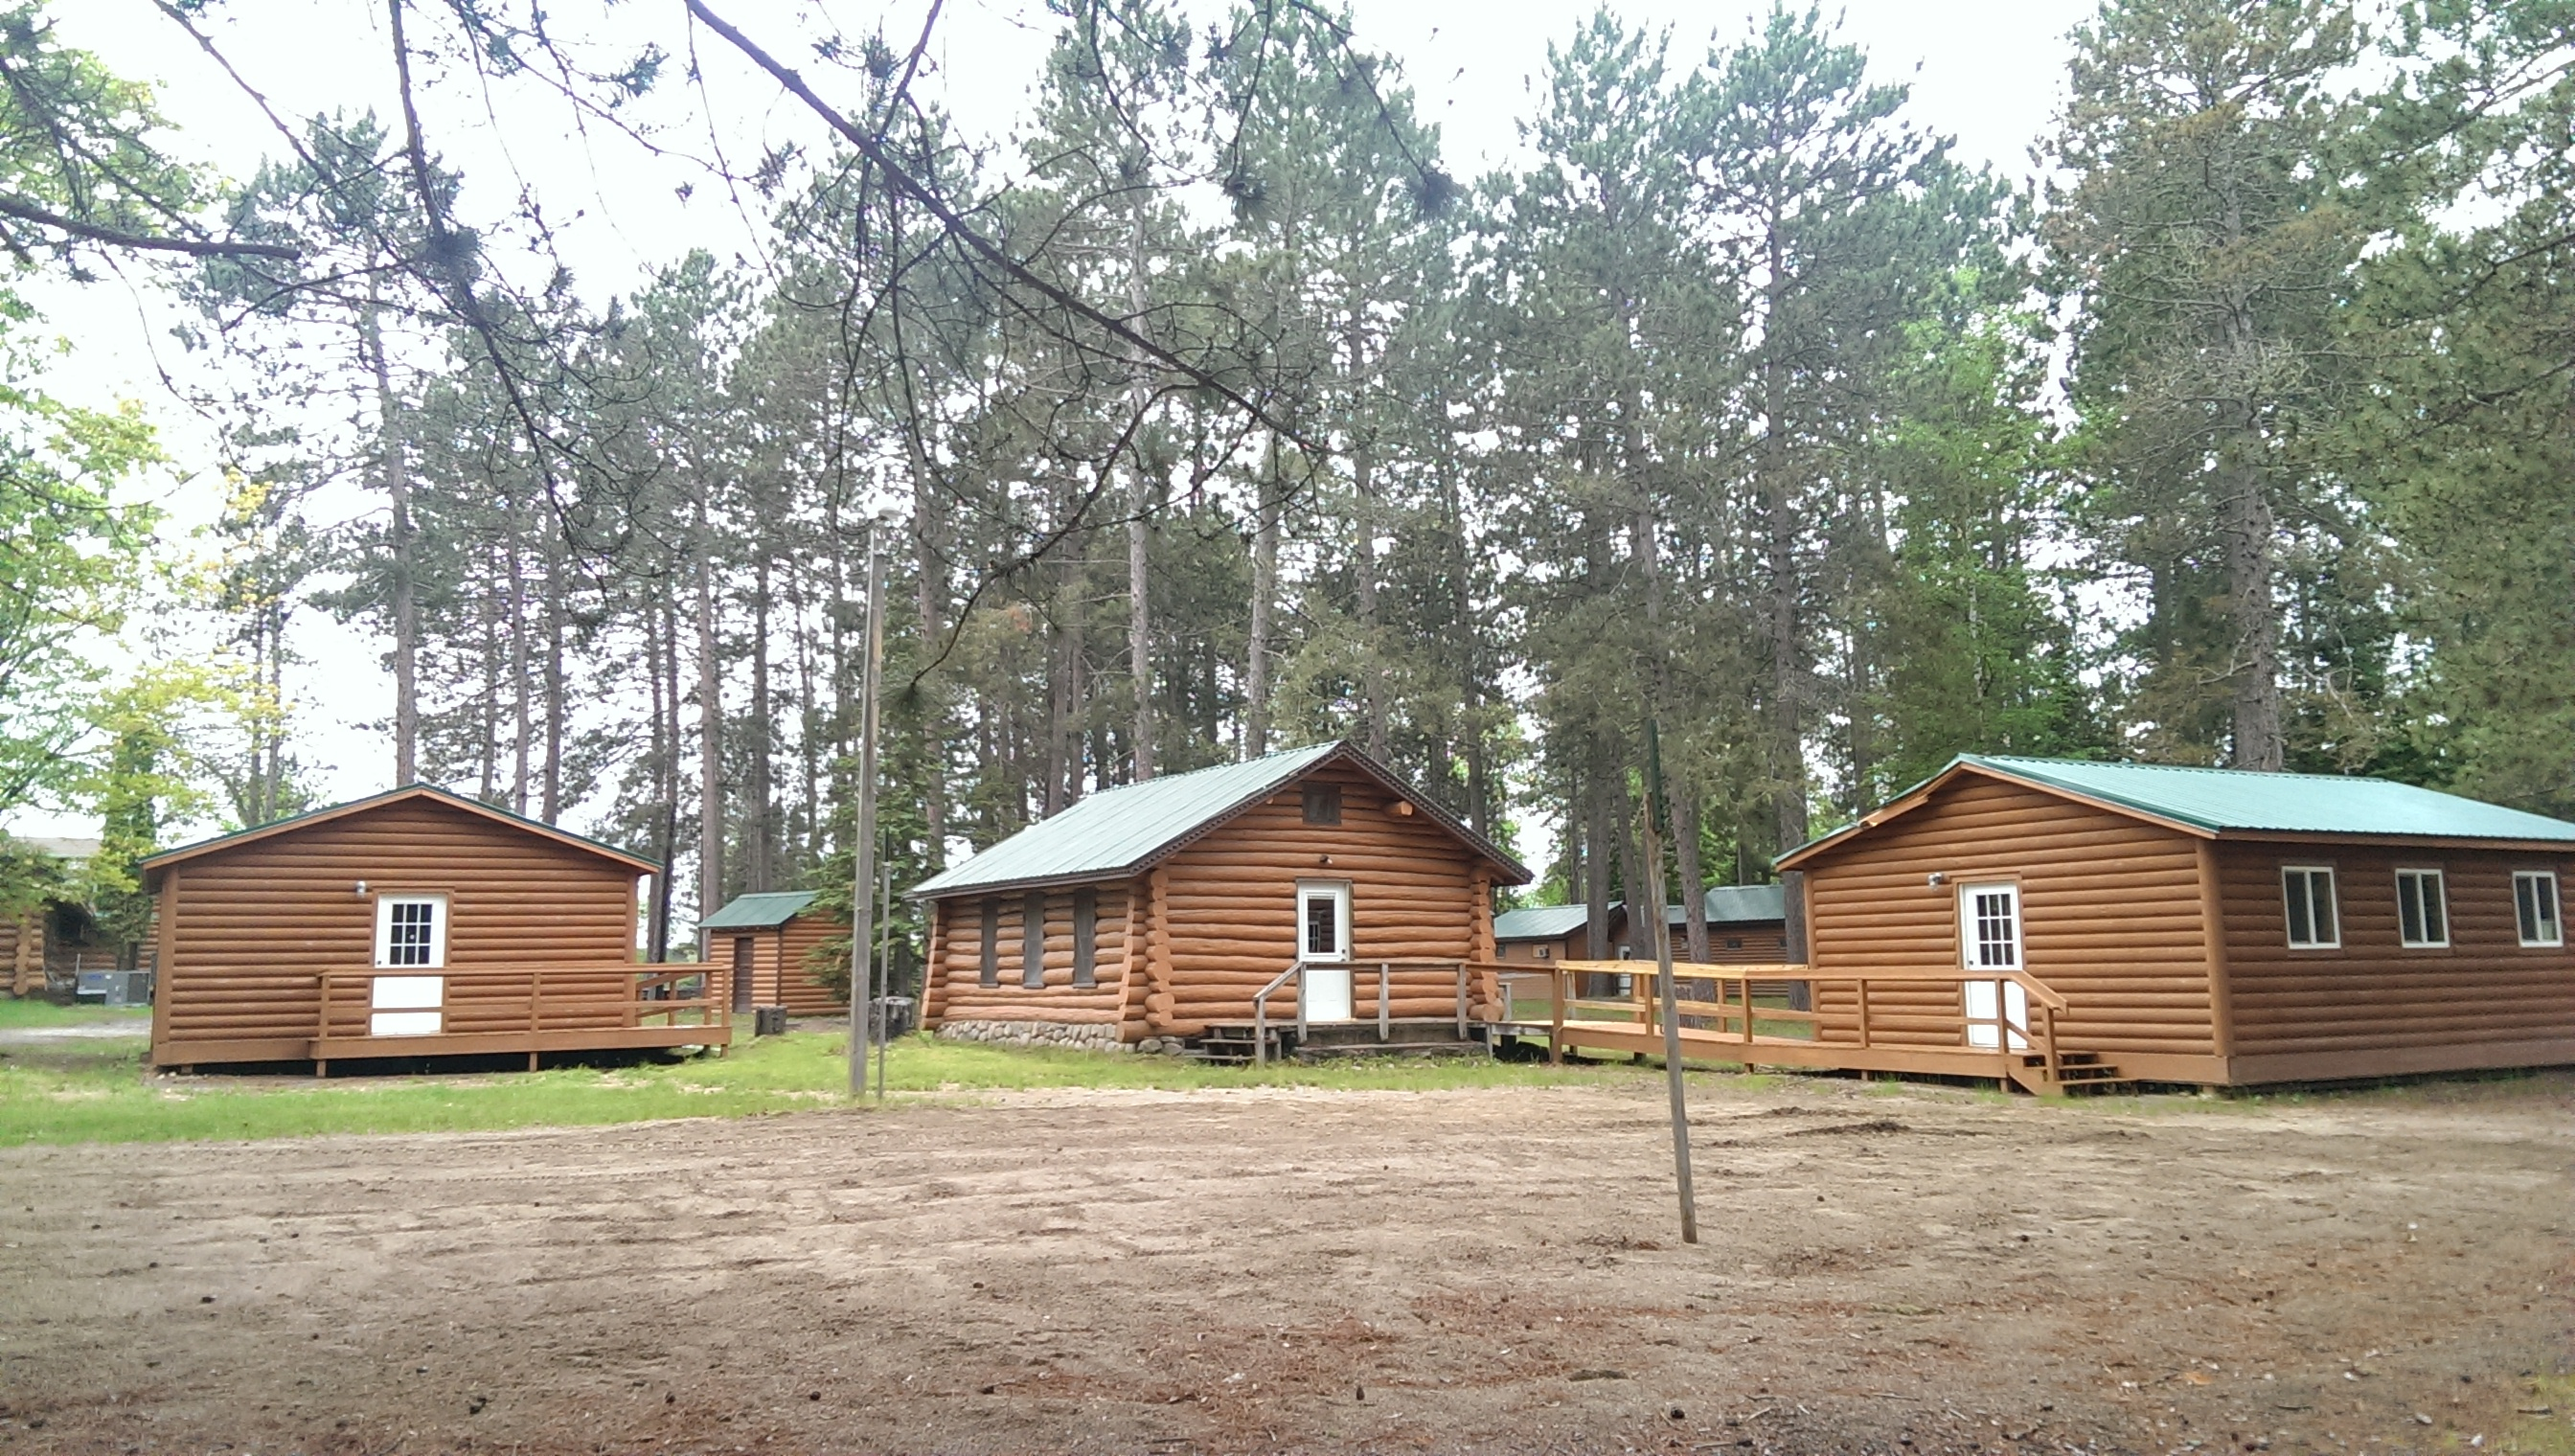 approved at in county article cabins rates for image news ky park pulaski rental